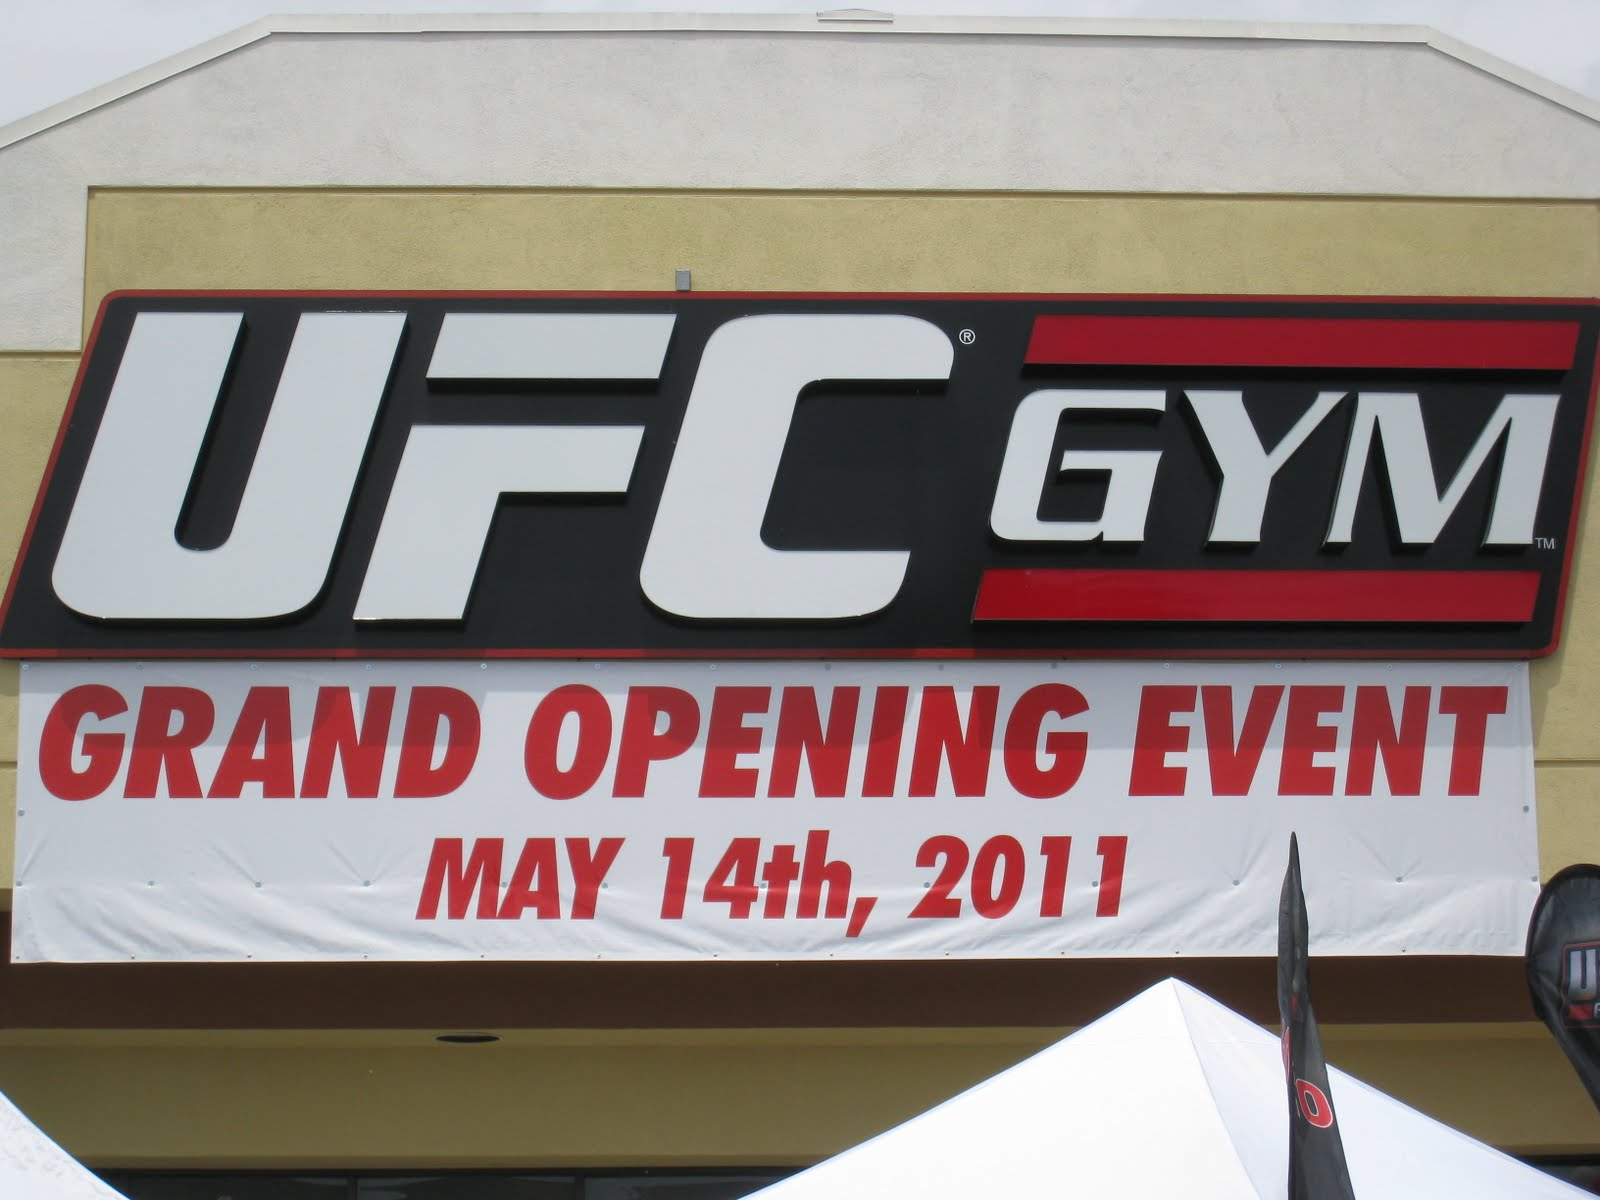 UFC Gym Grand Opening - My Autograph Signings